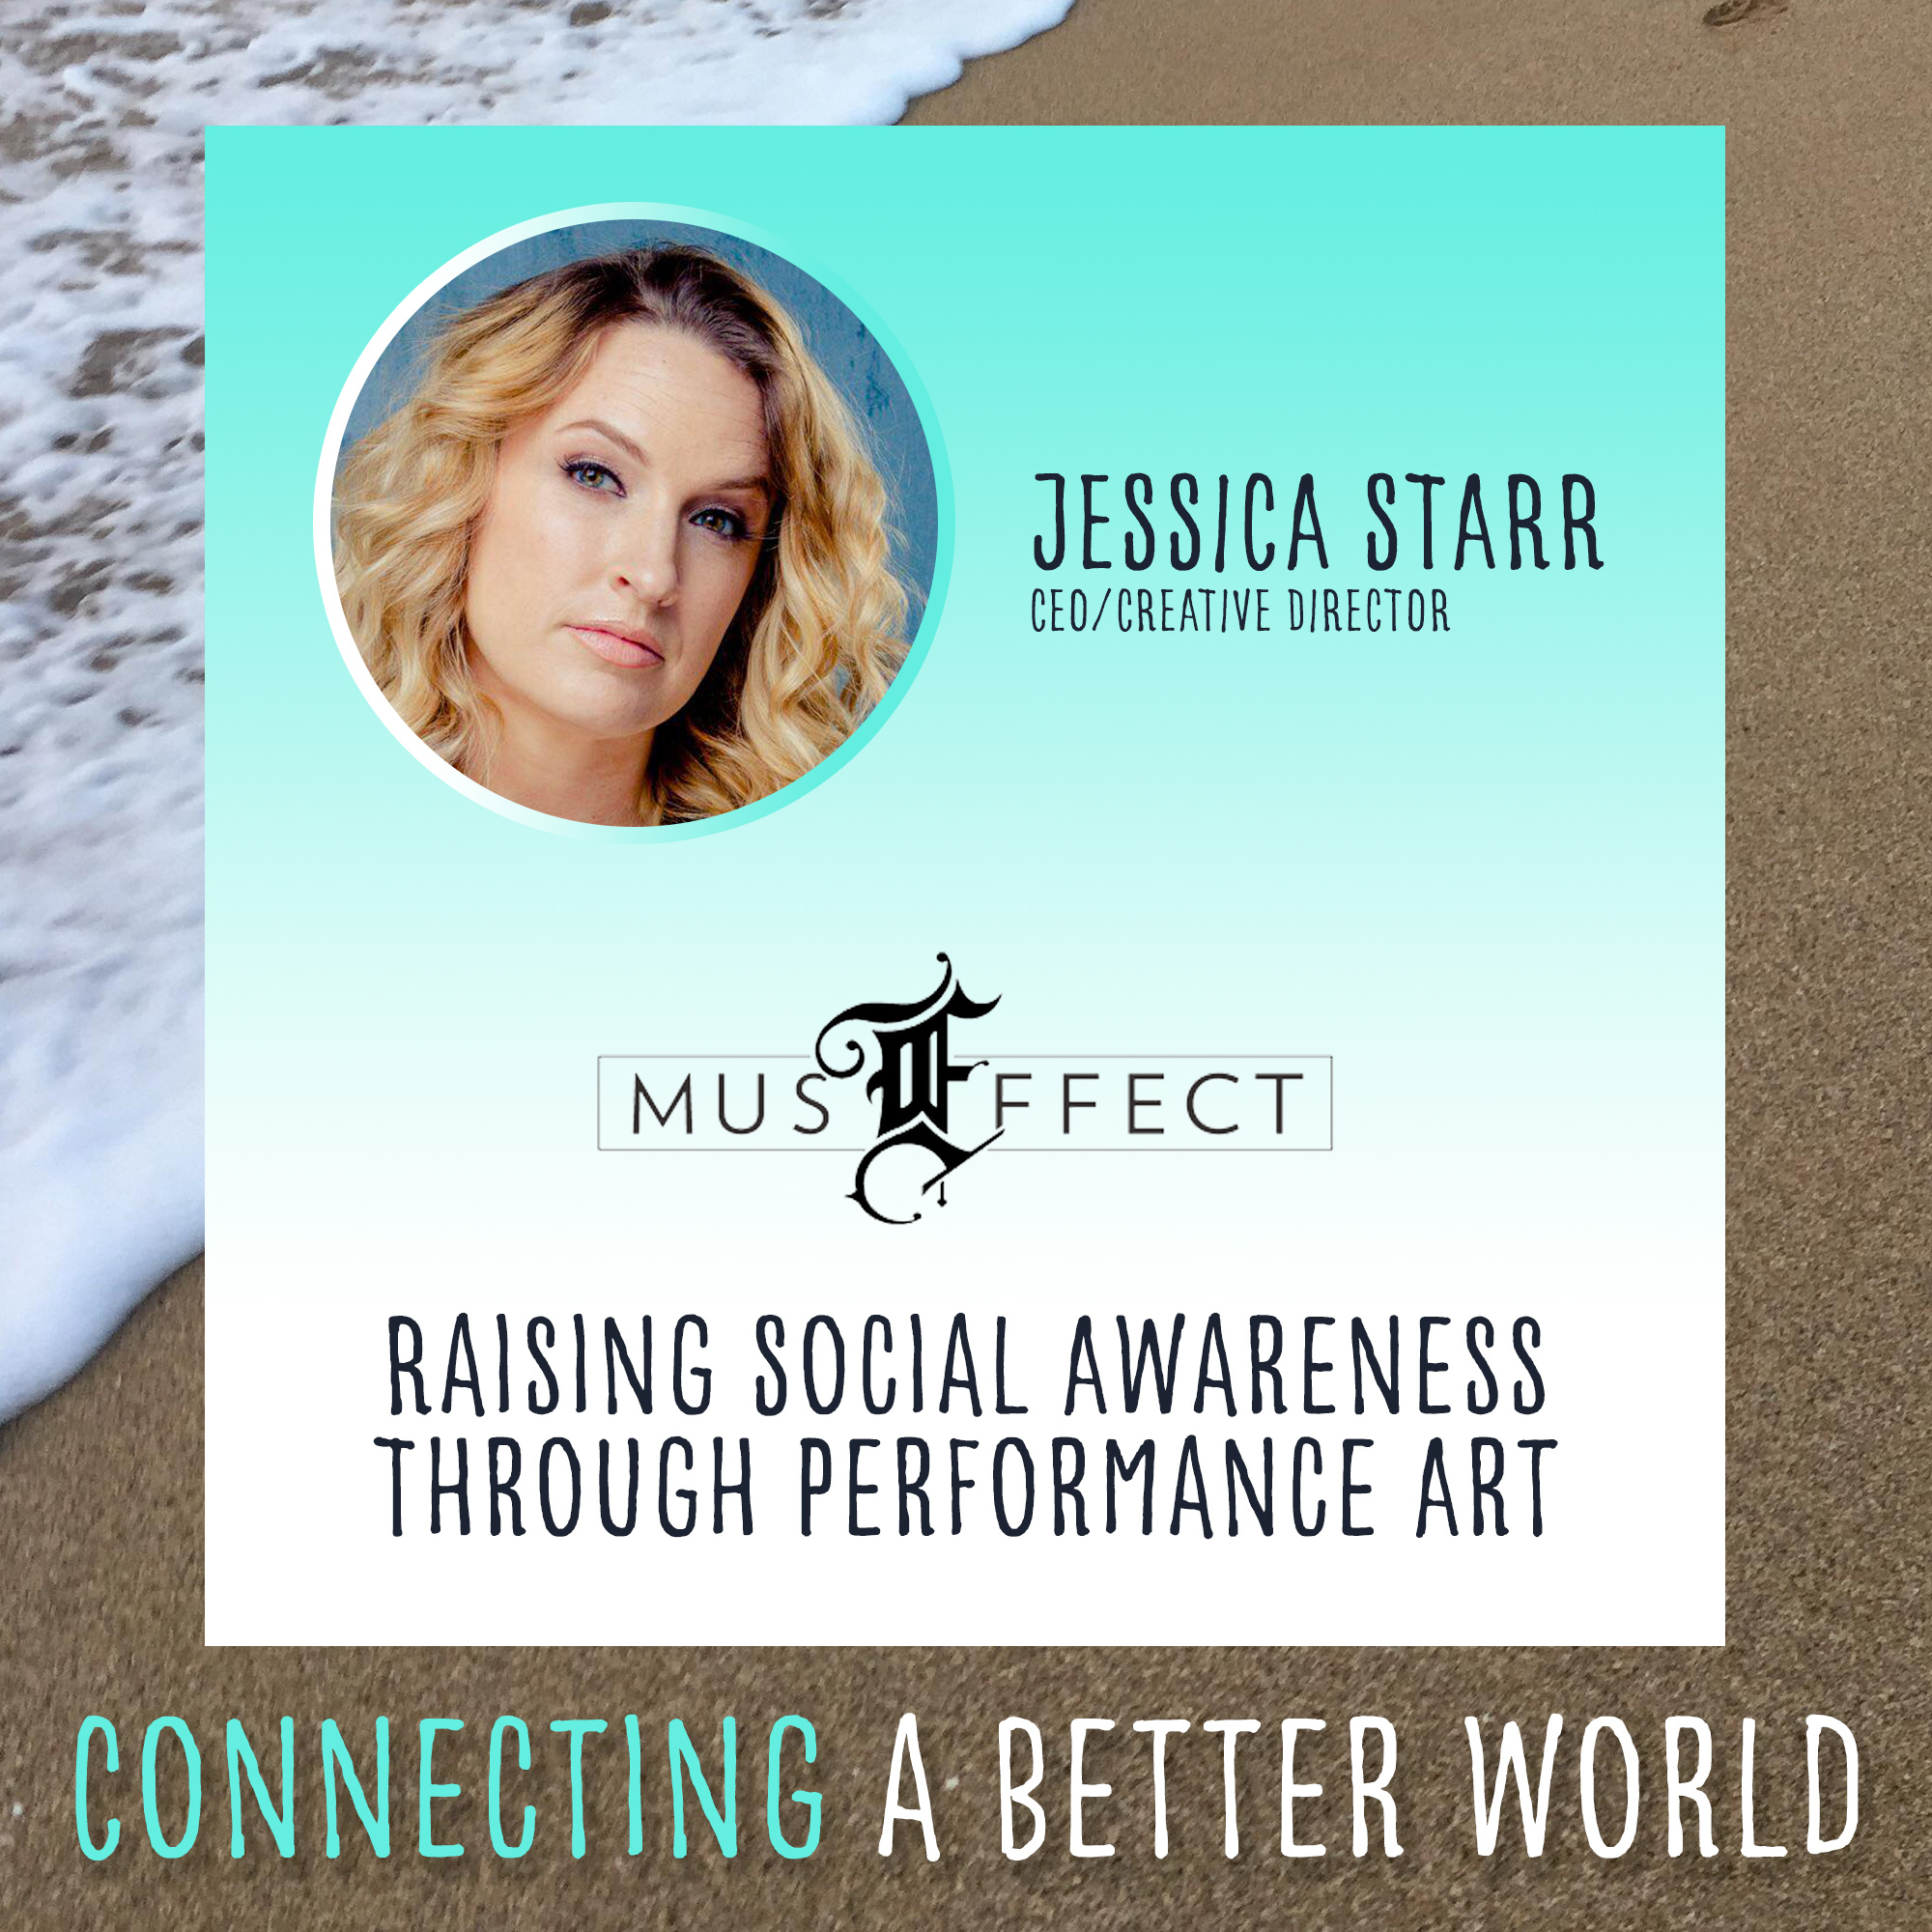 Raising Social Awareness Through Performance Art with Jessica Starr and MusEffect